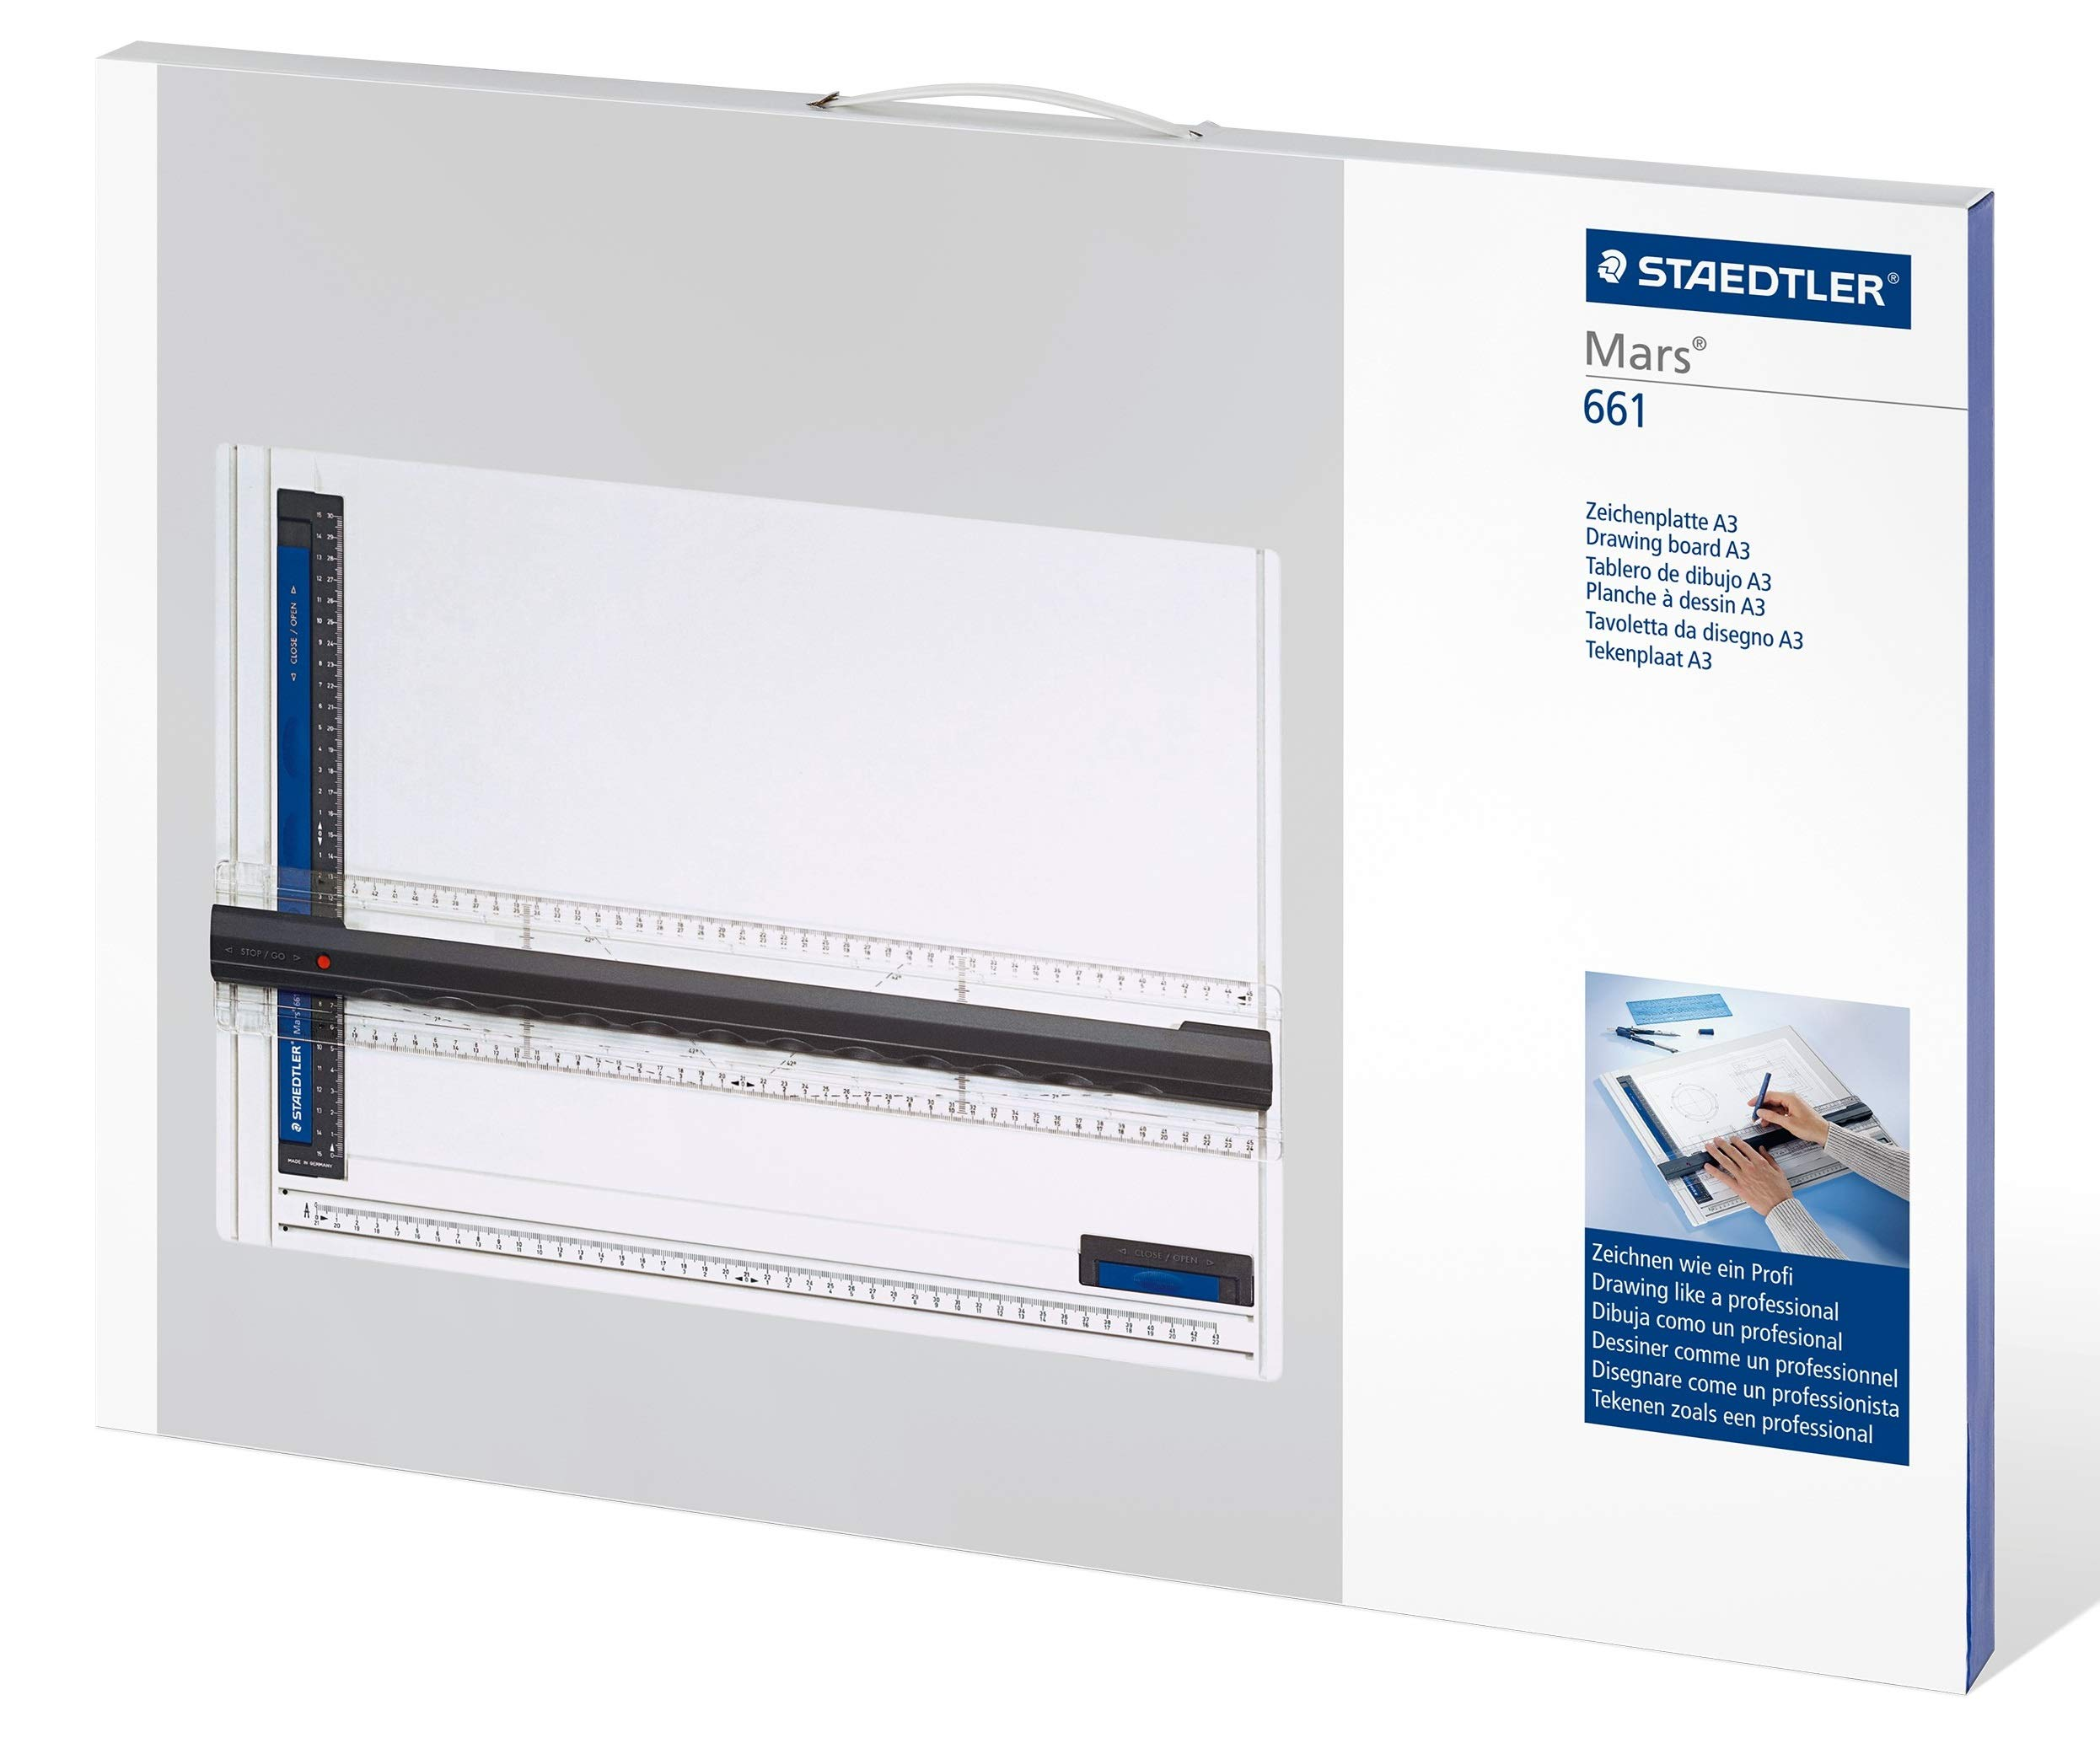 Staedtler drafting machine drawing board Mars Tecnico A3 size ST661-A3 by Staedtler